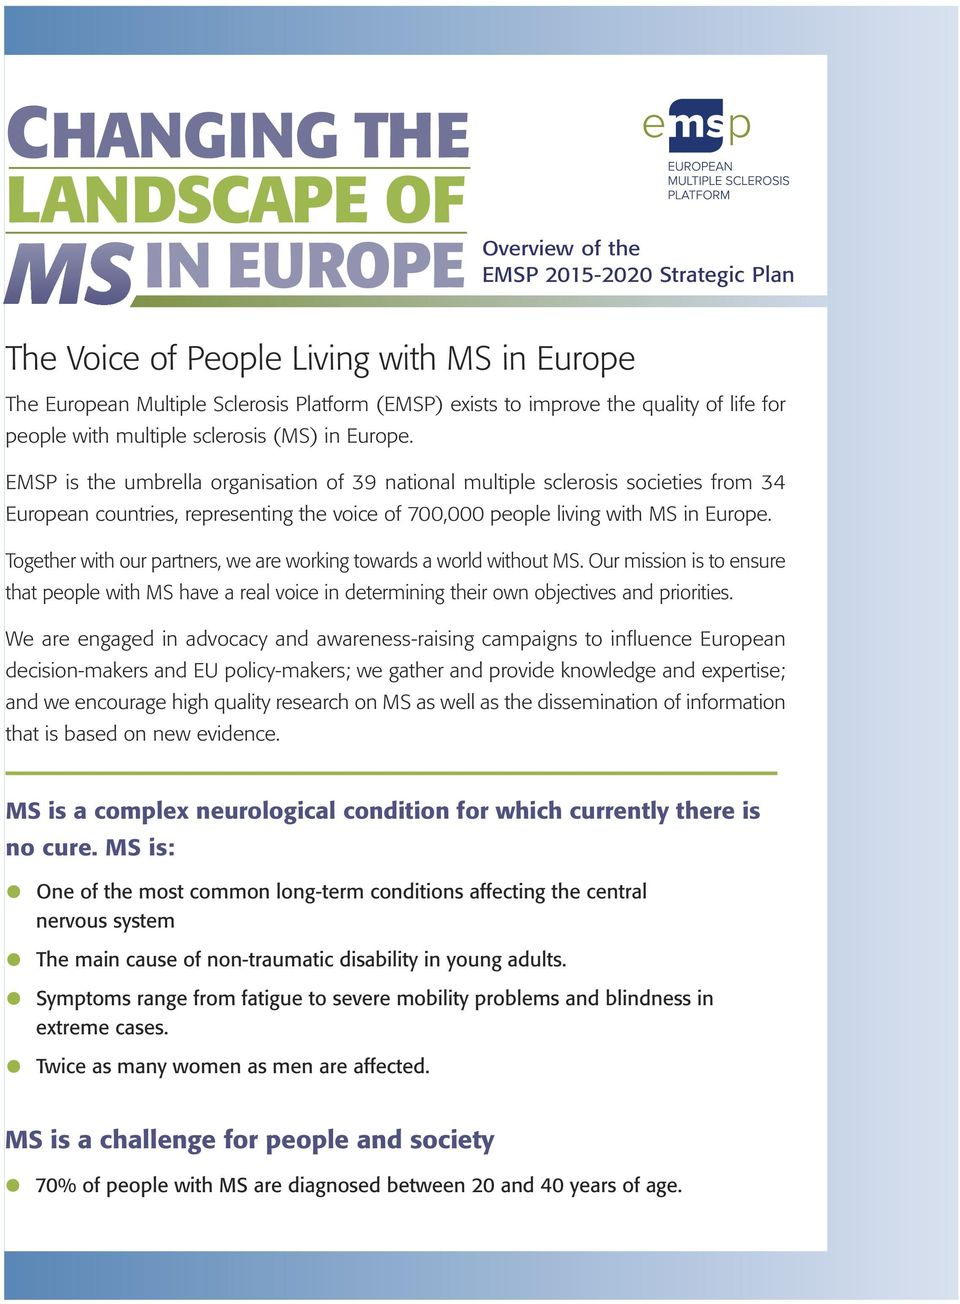 EMSP is the umbrella organisation of 39 national multiple sclerosis societies from 34 European countries, representing the voice of 700,000 people living with MS in Europe.